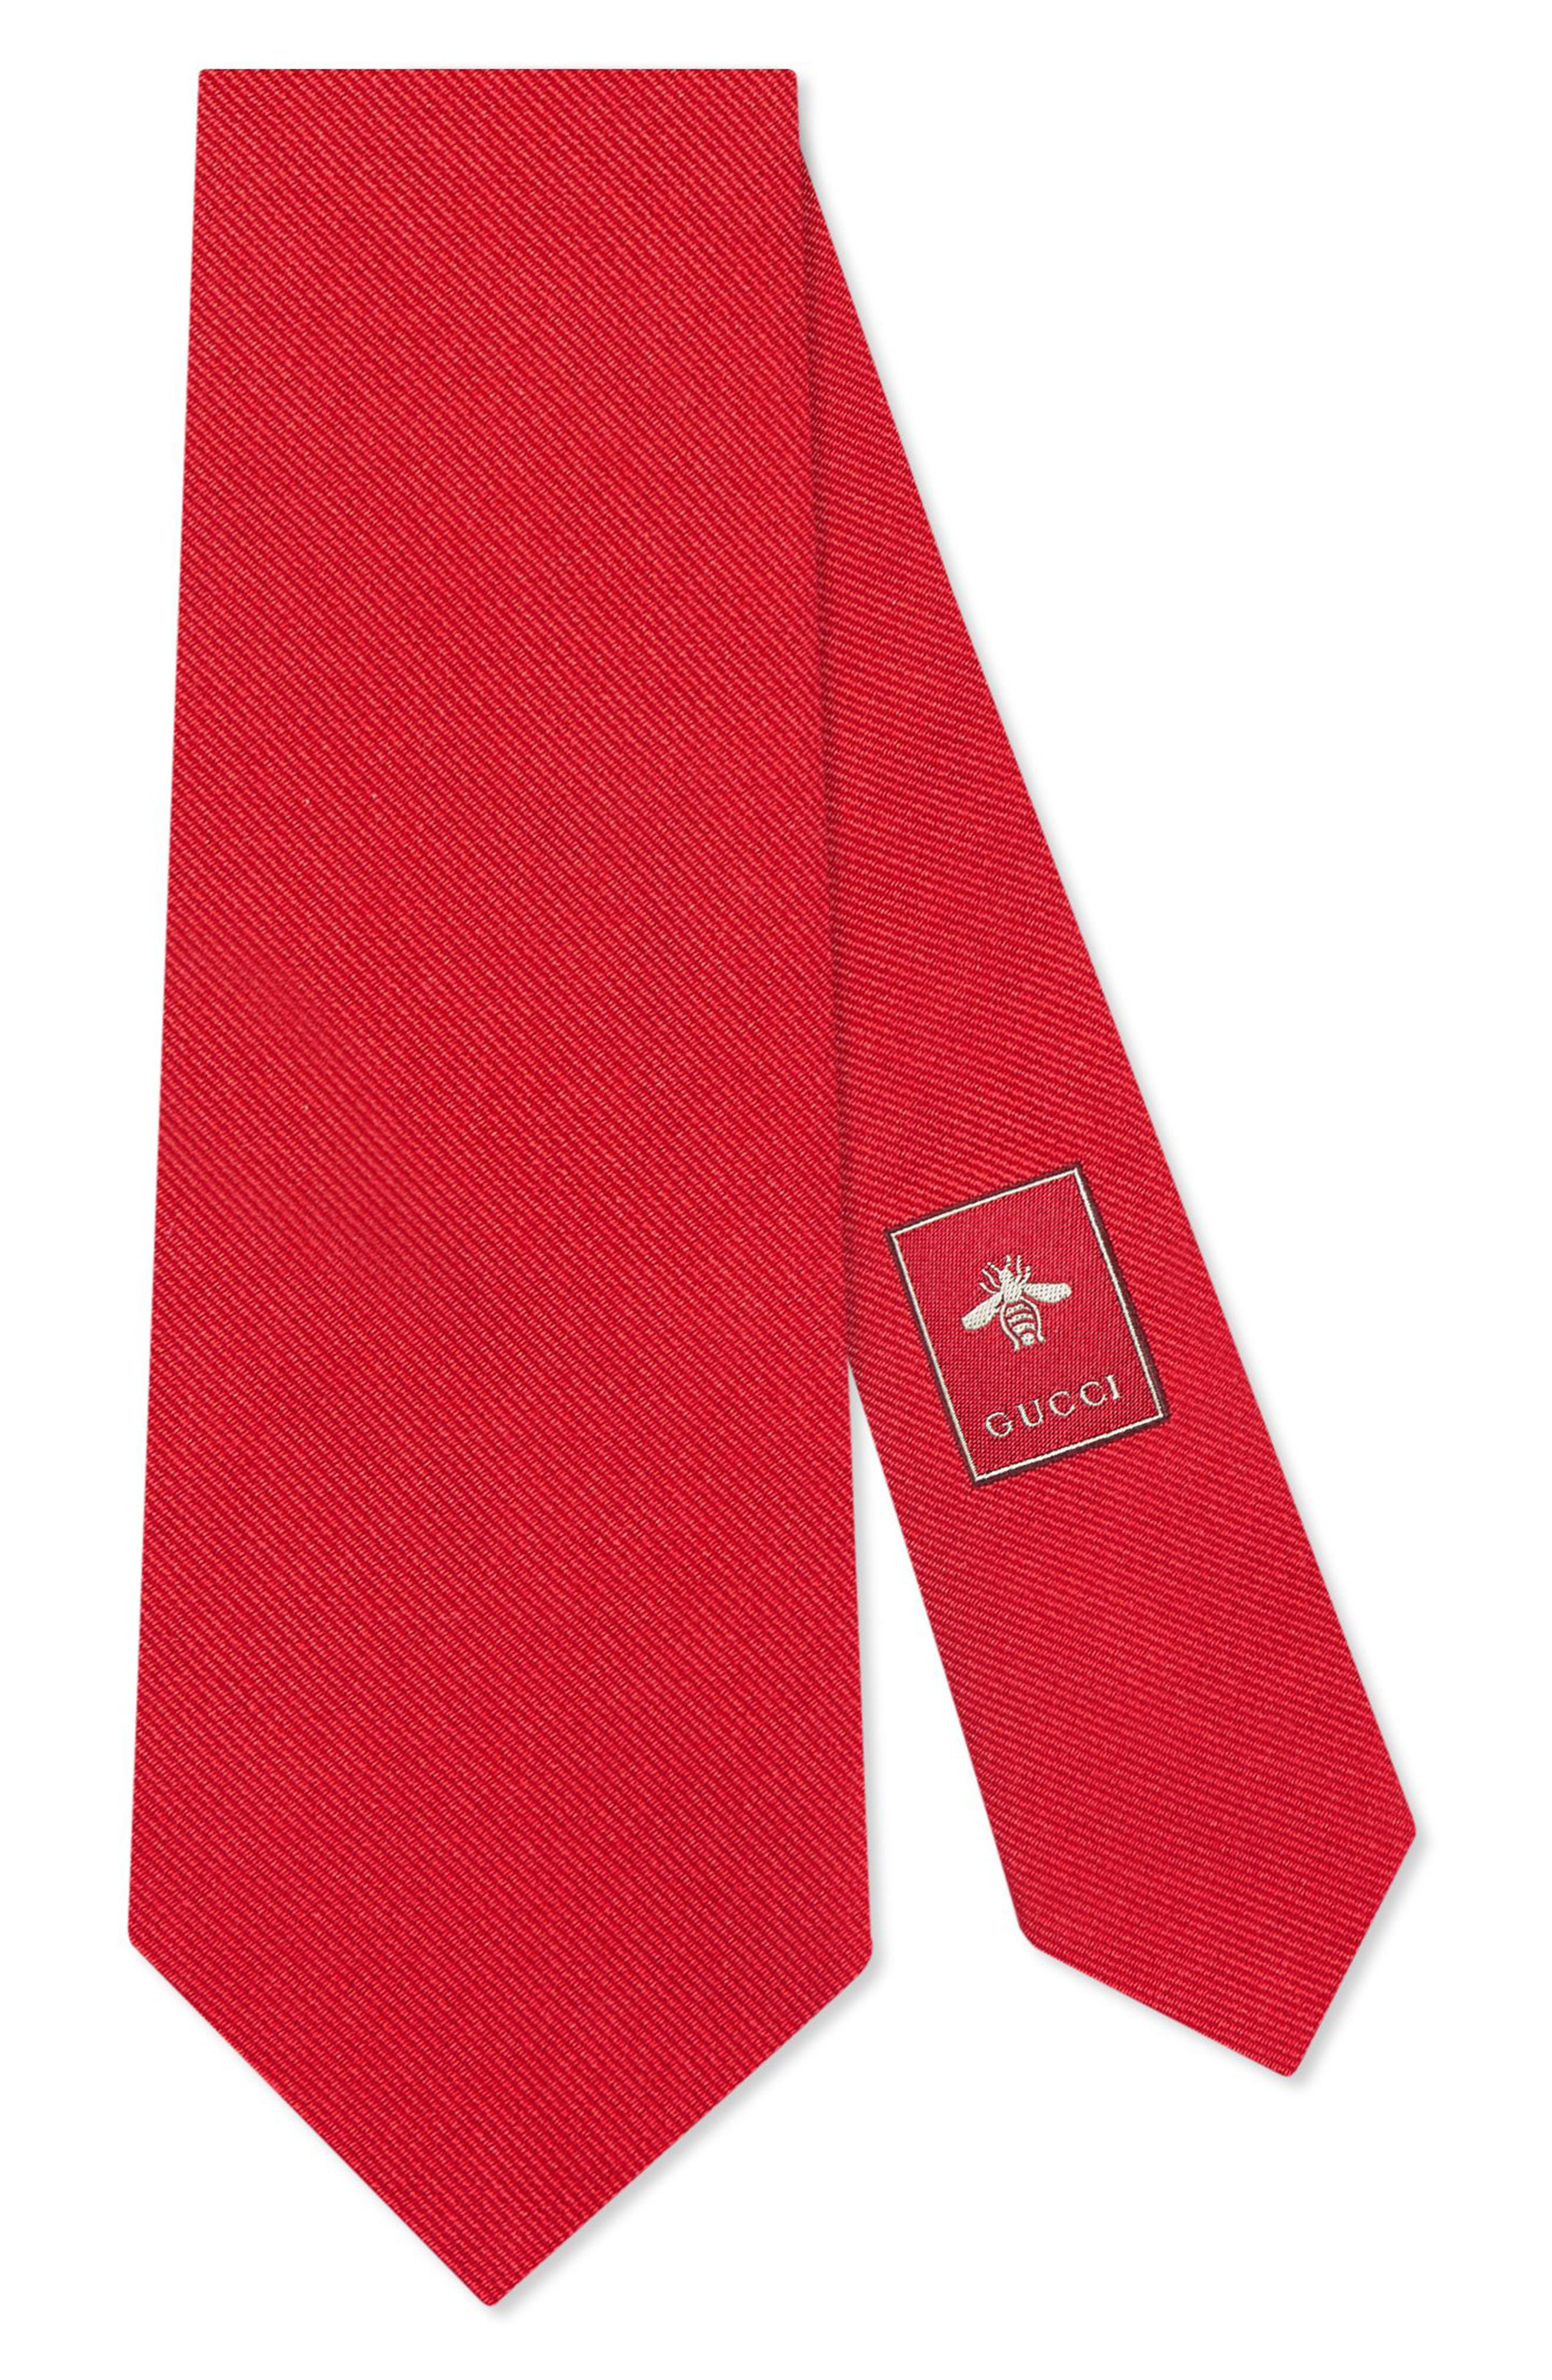 Tiger Embroidered Silk Tie,                             Main thumbnail 1, color,                             RED